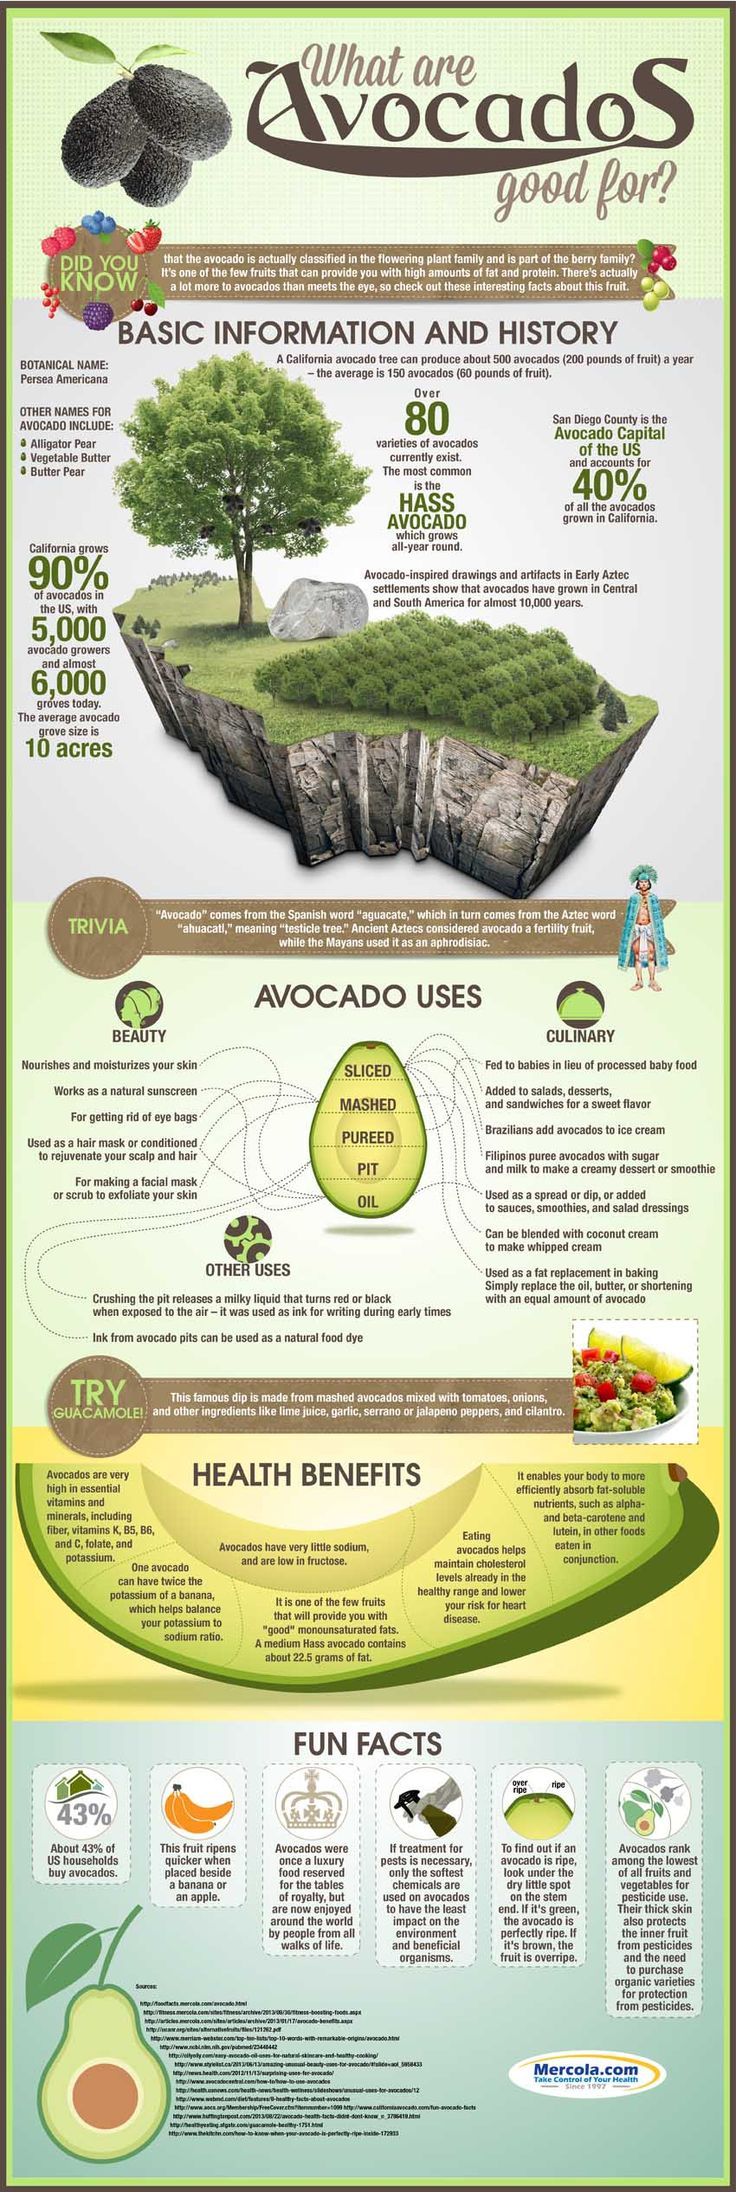 Discover avocado uses and benefits through The Amazing Avocado chart here. Learn why this food should be part of your lchf diet. www.oneintofood.com